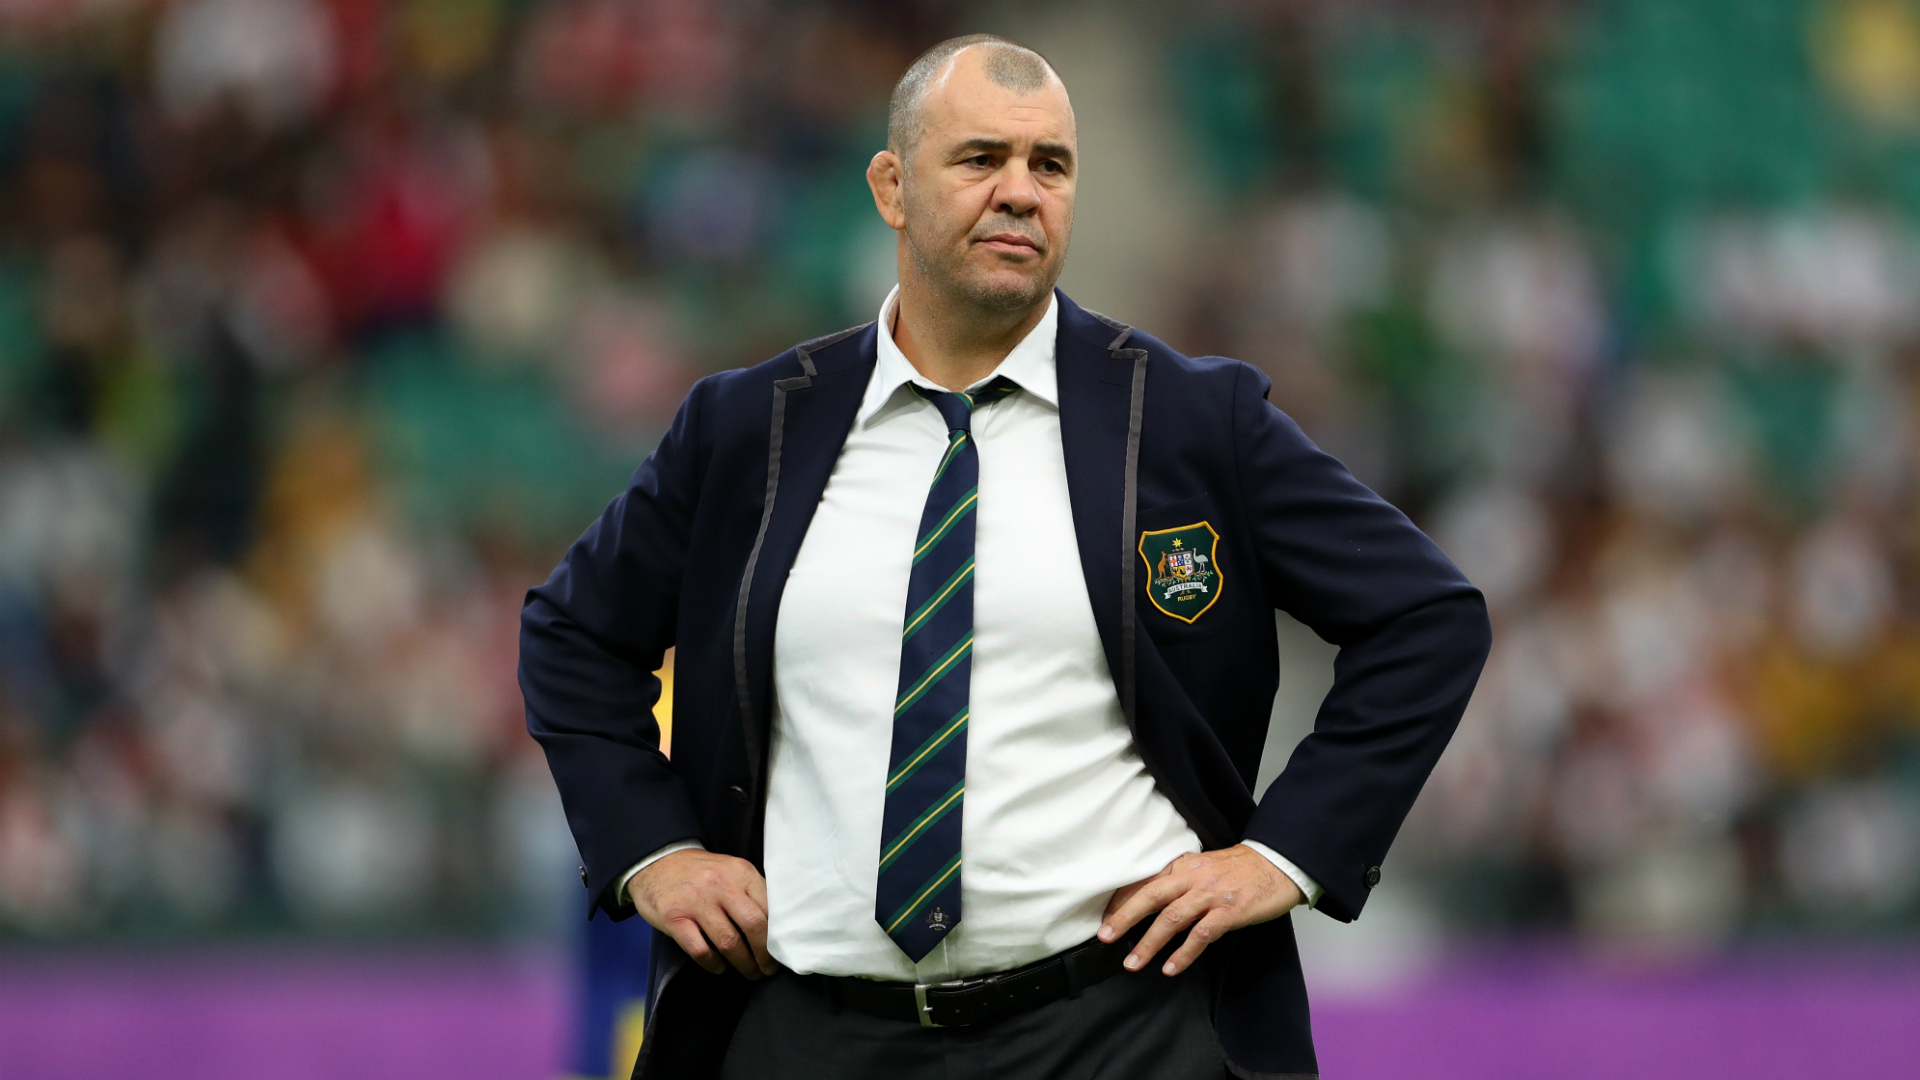 Rugby Australia must do all it can to continue promoting home coaches, says departing boss Michael Cheika.